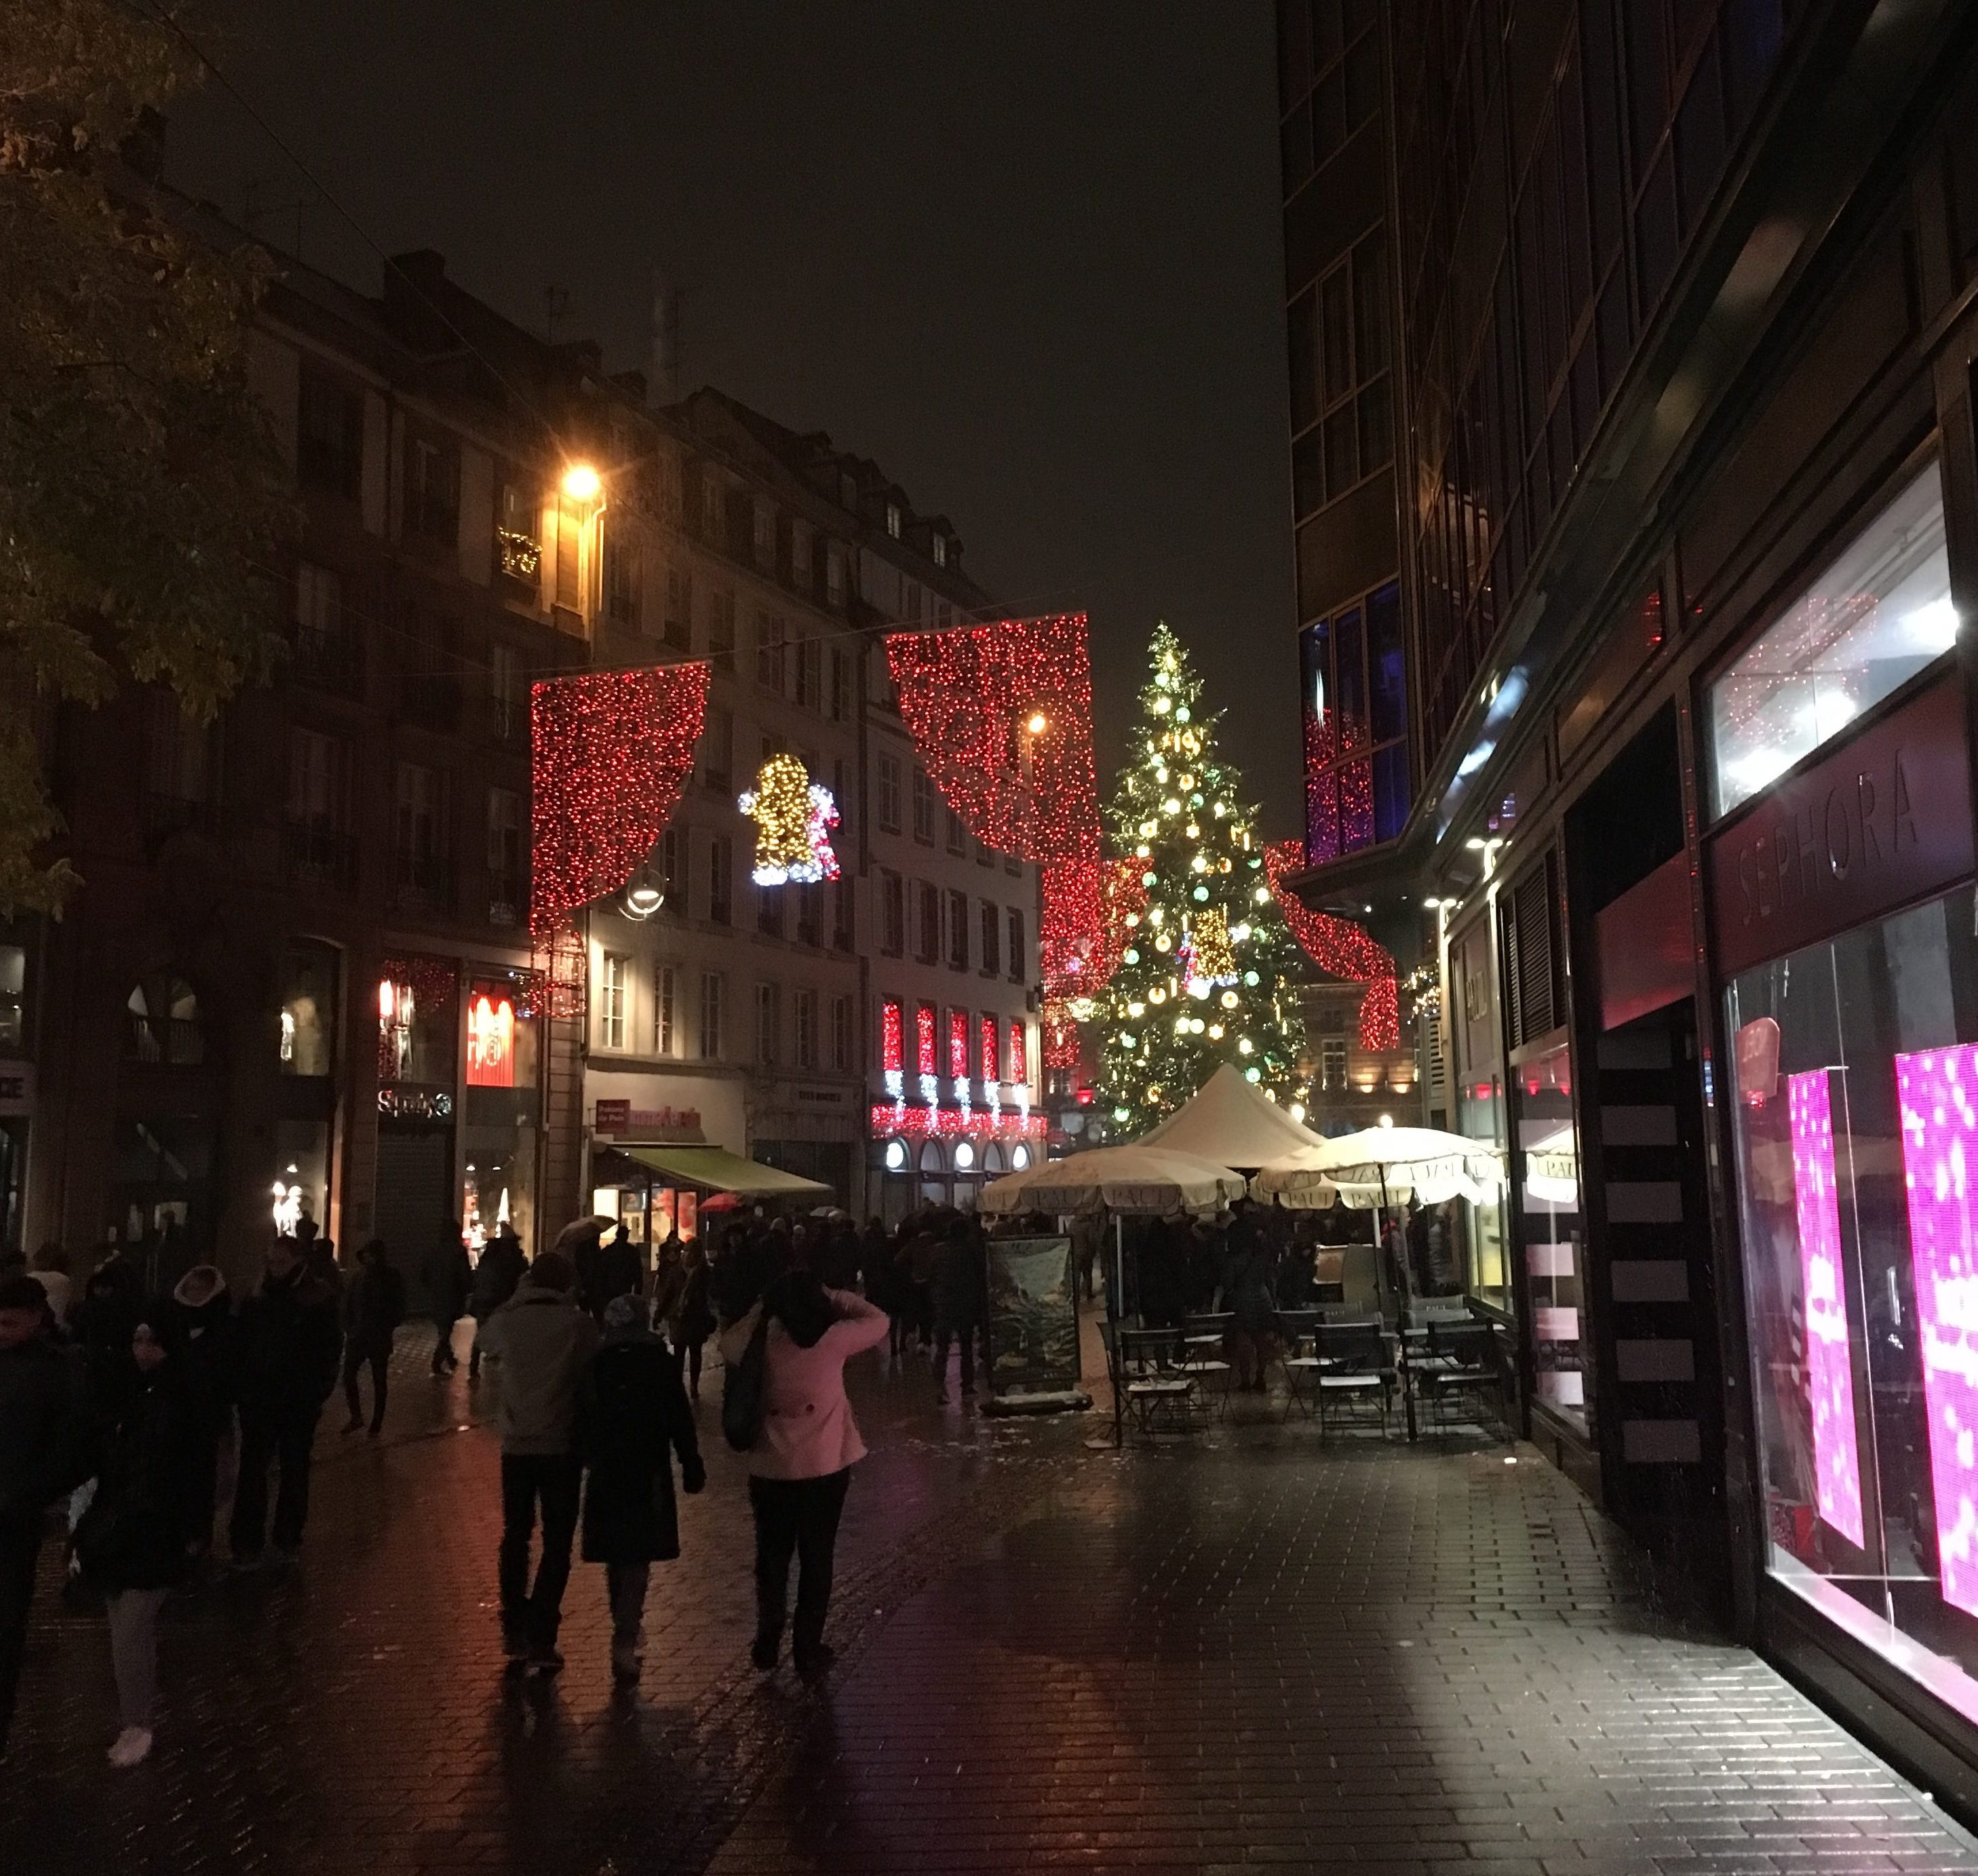 The Strasbourg Christmas Tree, France - December 2017